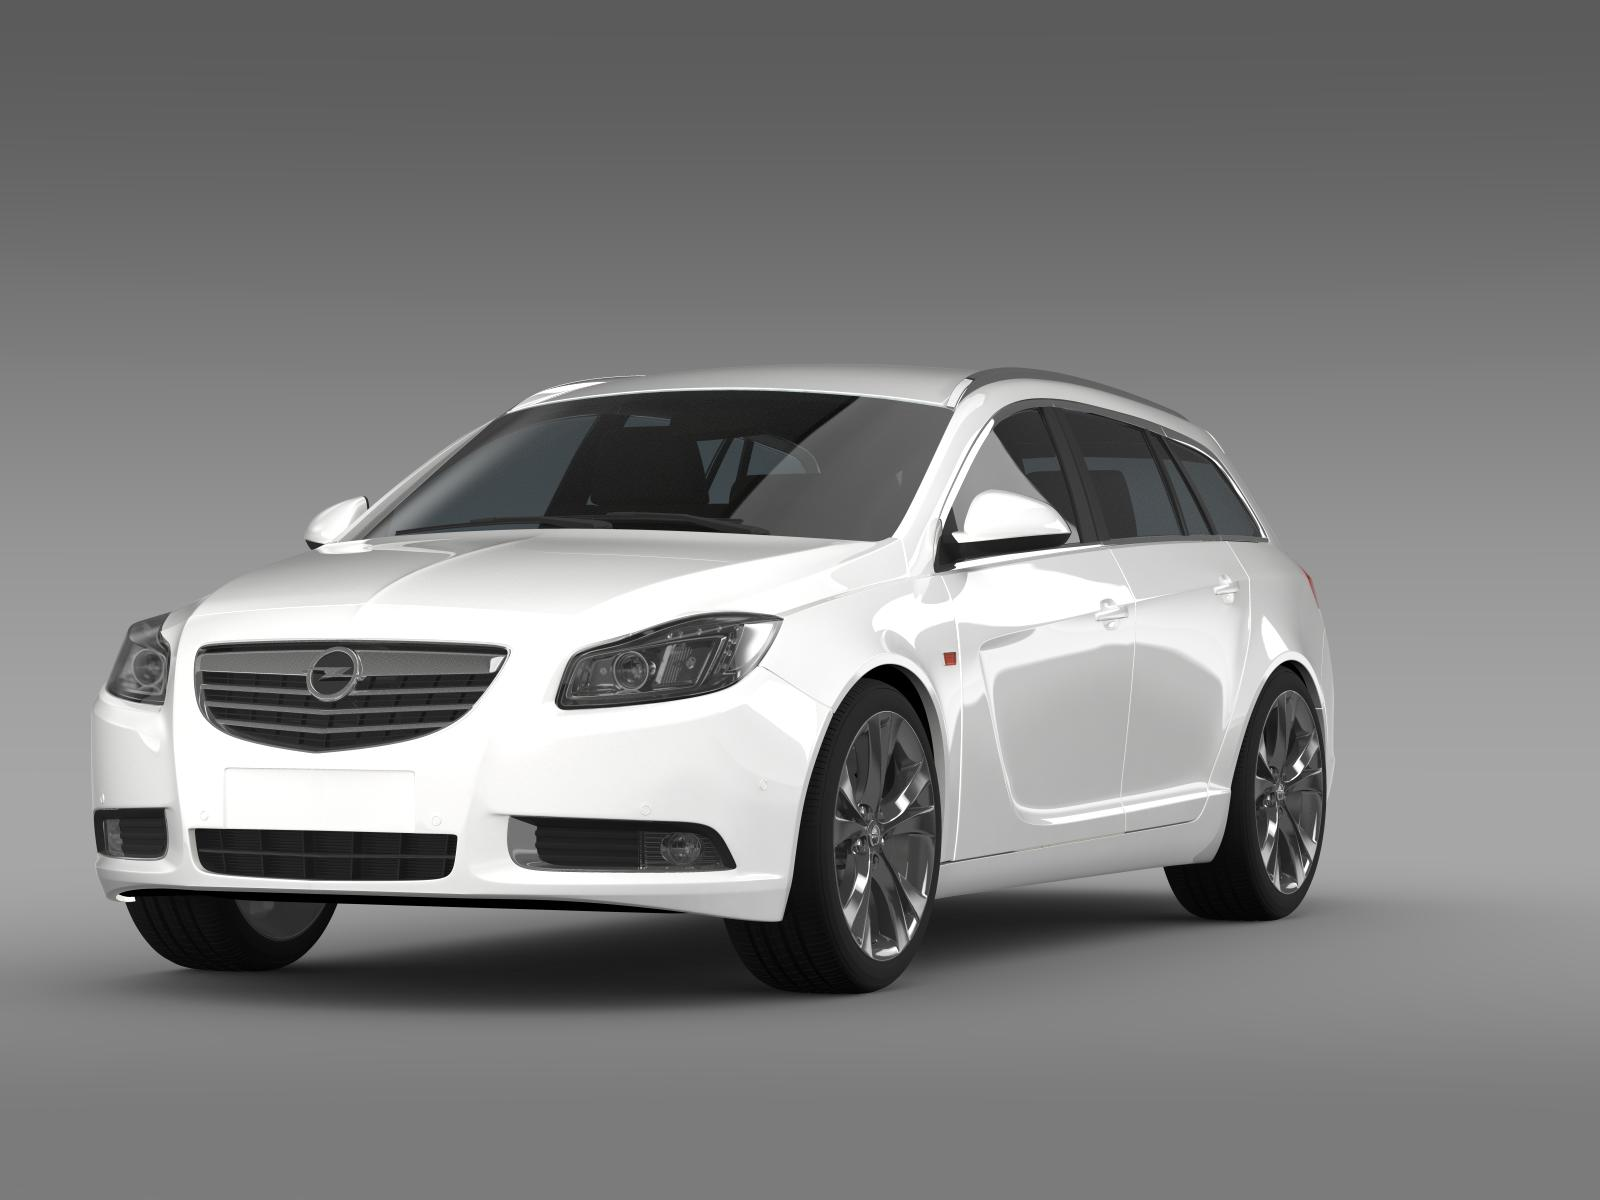 opel insignia biturbo sports tourer 2013 3d model. Black Bedroom Furniture Sets. Home Design Ideas